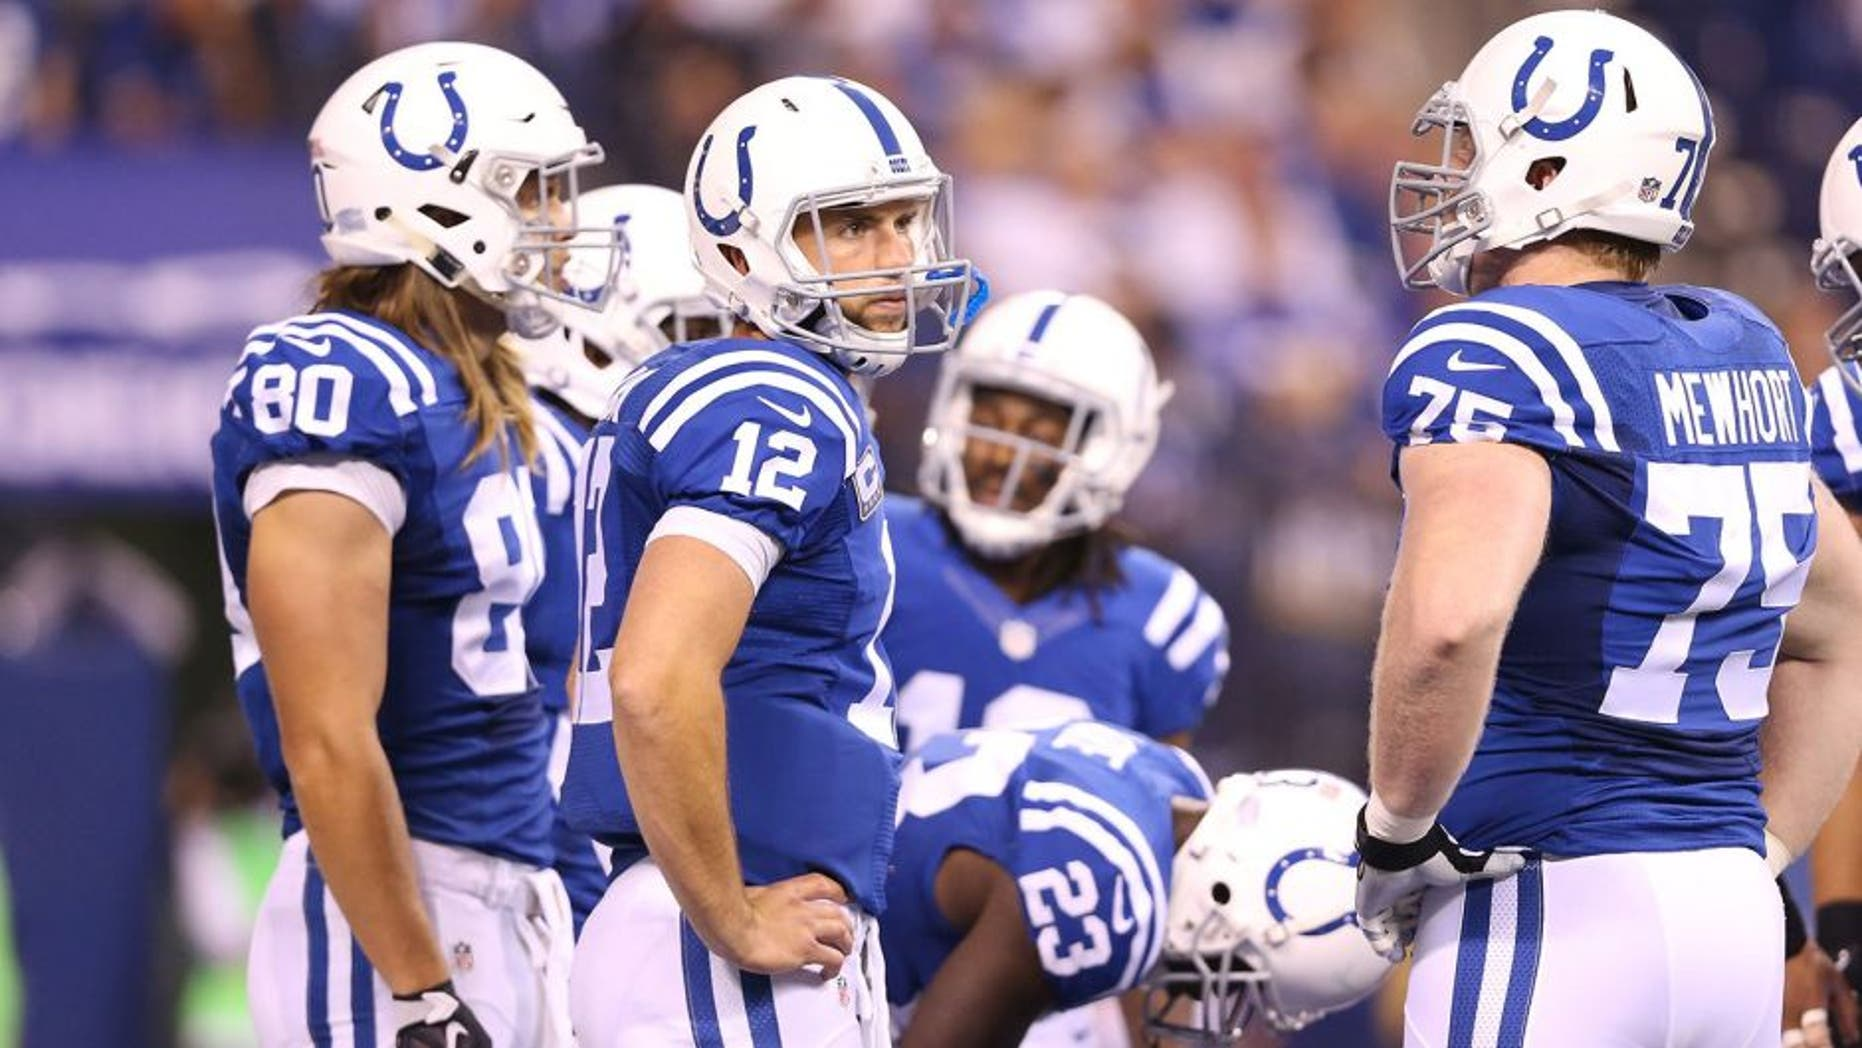 INDIANAPOLIS, IN - SEPTEMBER 21: Andrew Luck of the Indianapolis Colts looks to the bench during the game against the New York Jets at Lucas Oil Stadium on September 21, 2015 in Indianapolis, Indiana. (Photo by Andy Lyons/Getty Images)